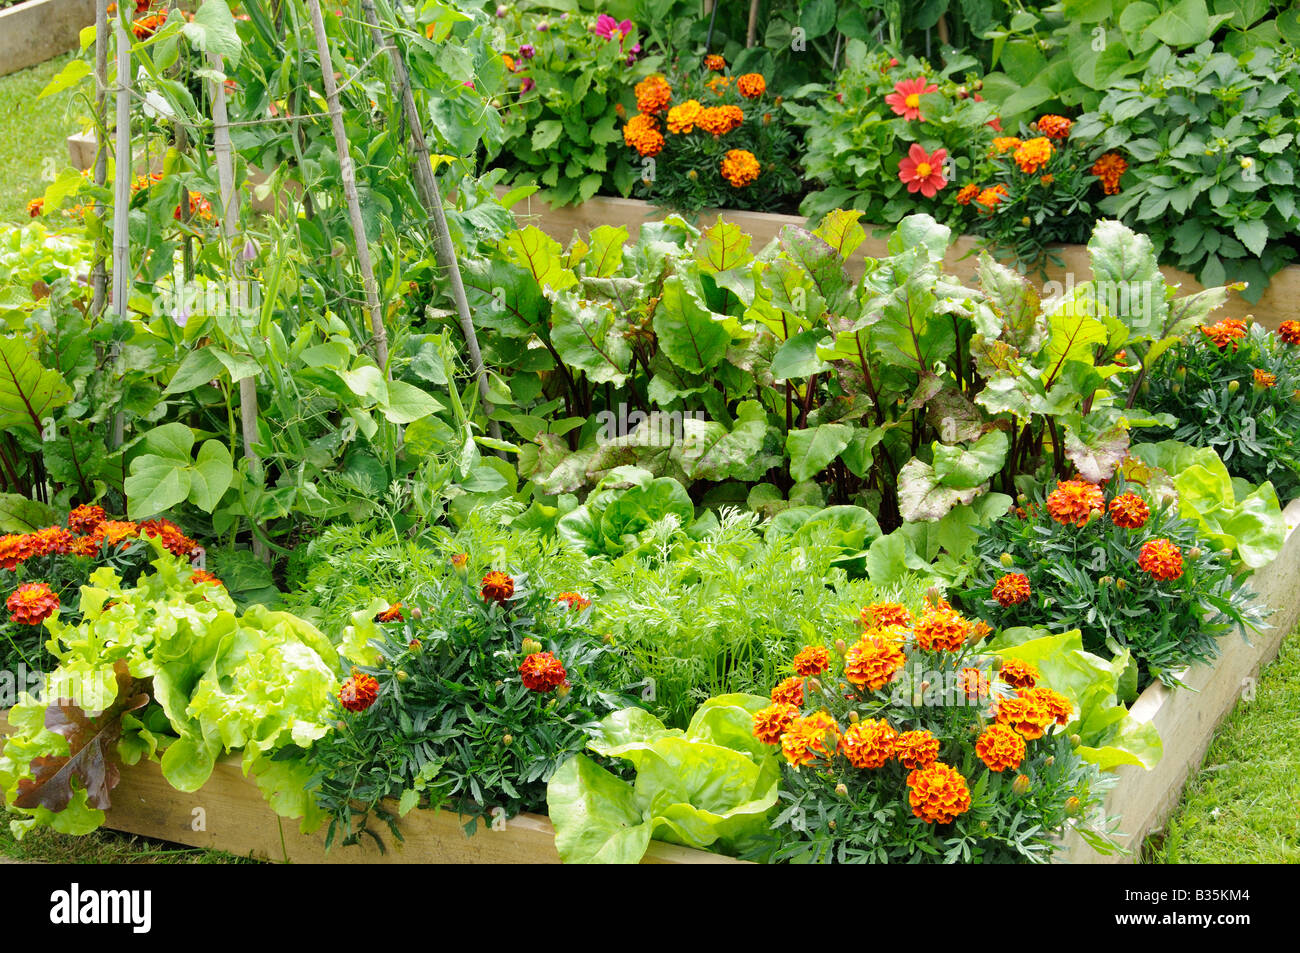 summer garden with mixed vegetable and flower potager